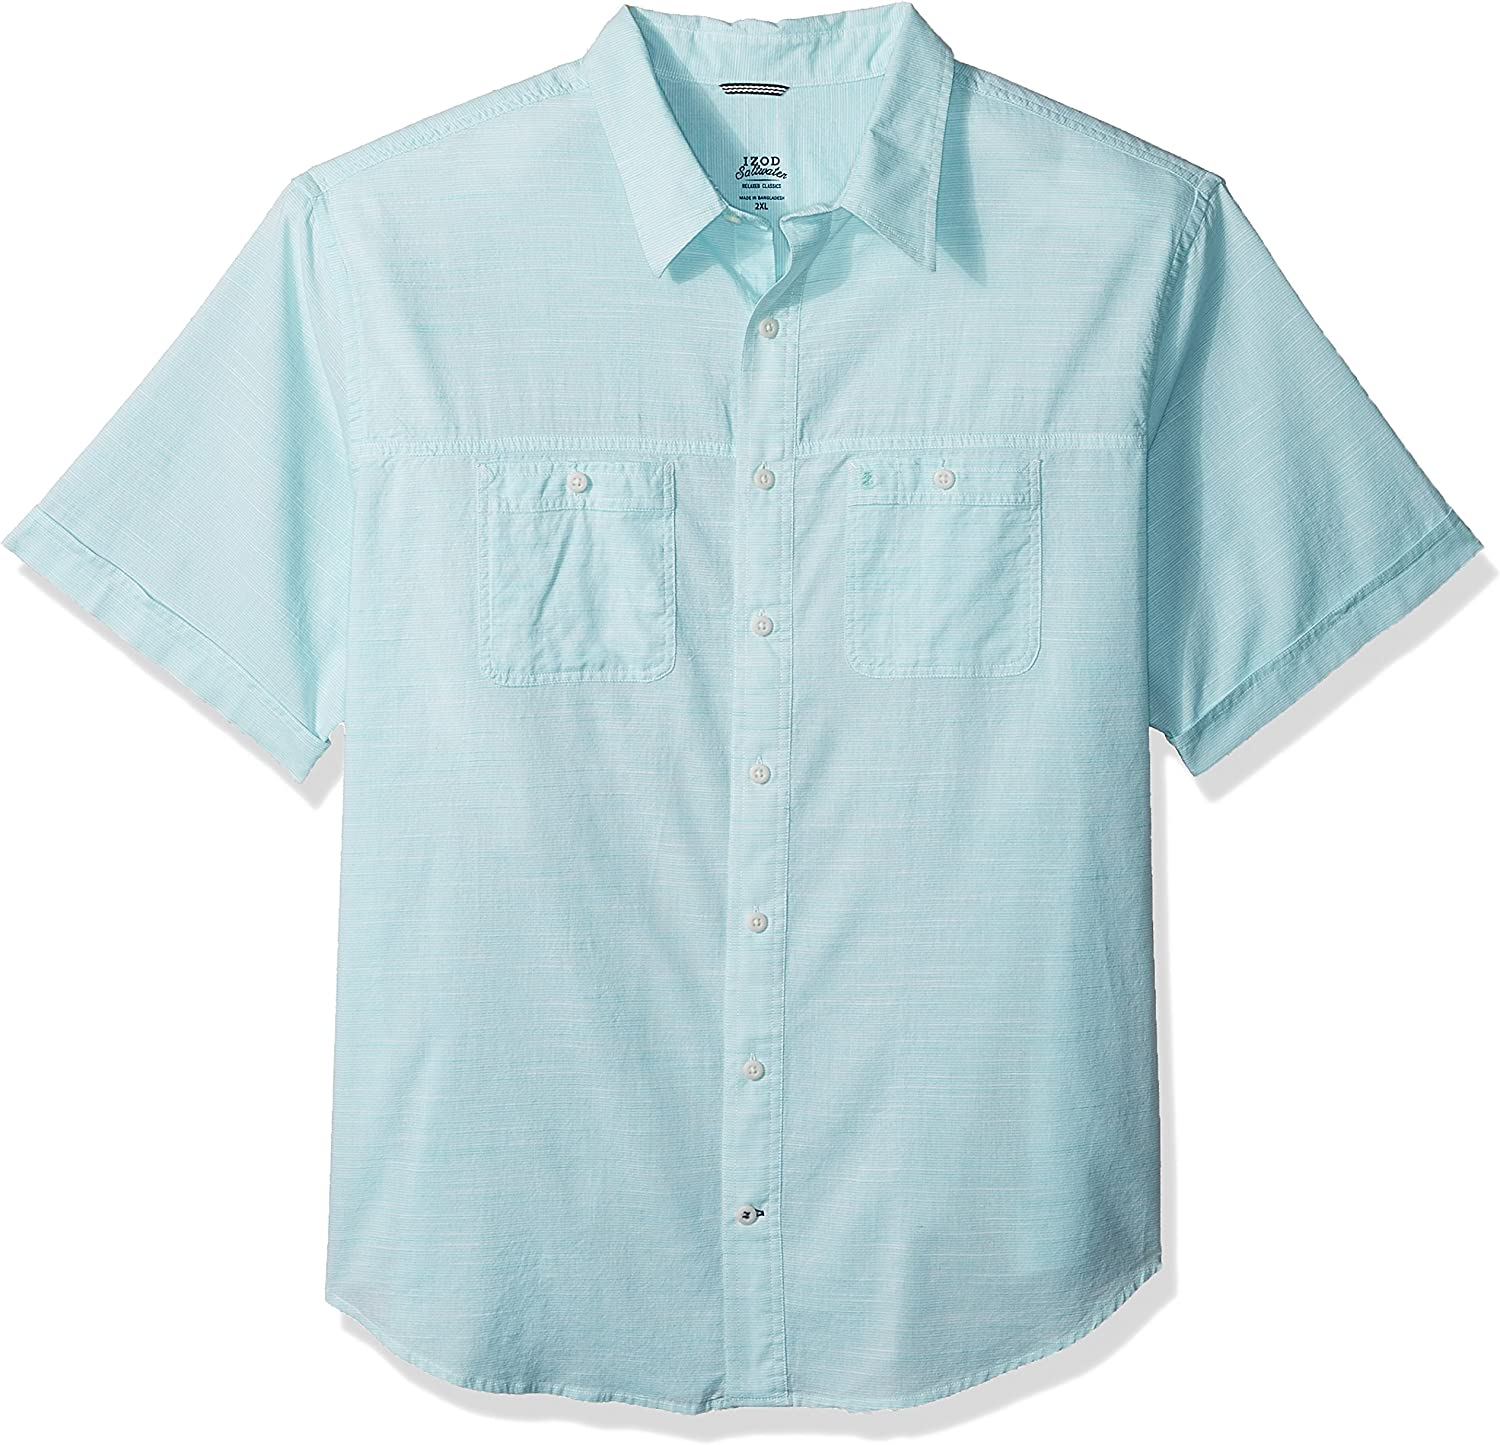 Izod Mens Big and Tall Saltwater Dockside Chambray Short Sleeve Button Down Solid Shirt